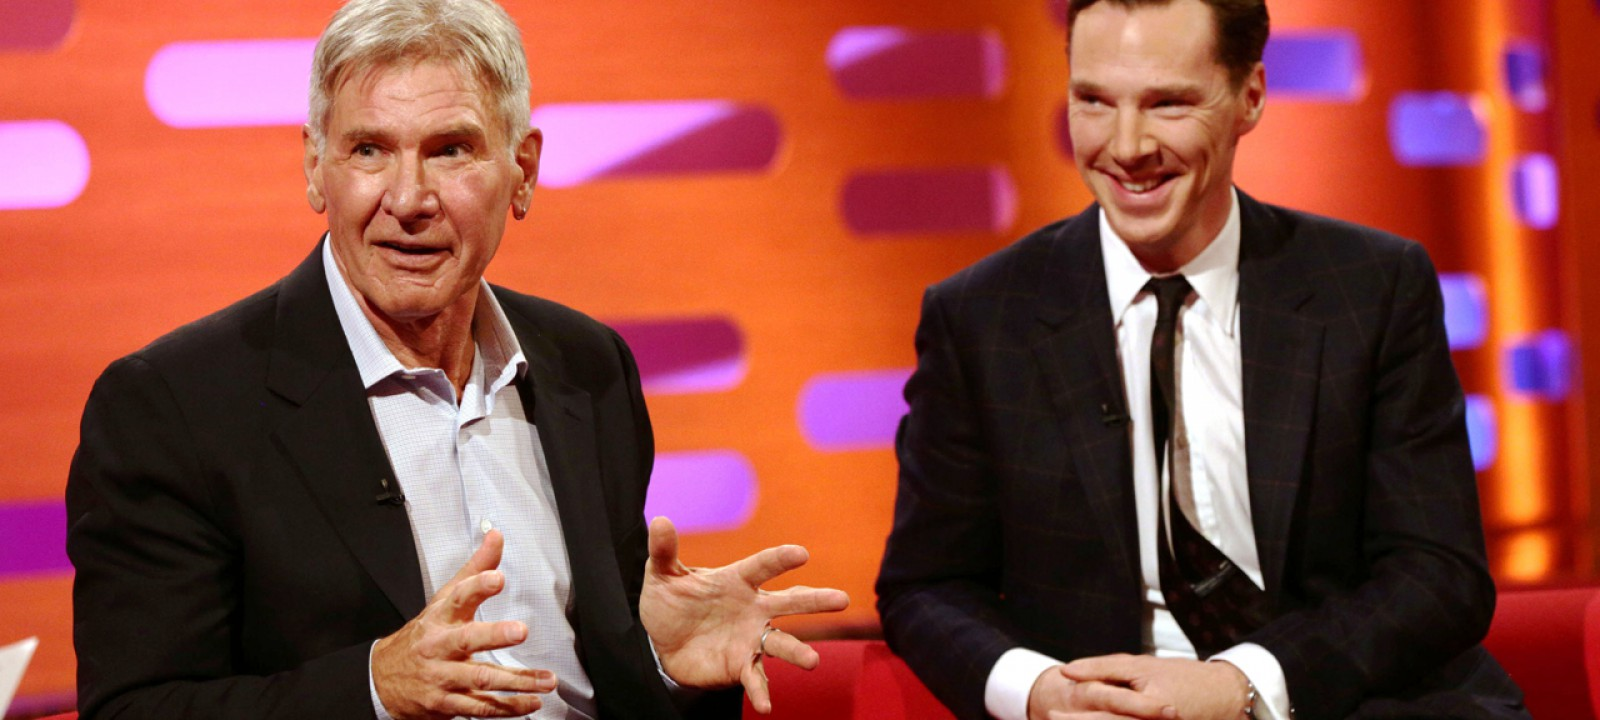 the-graham-norton-show-s14-ep1-01